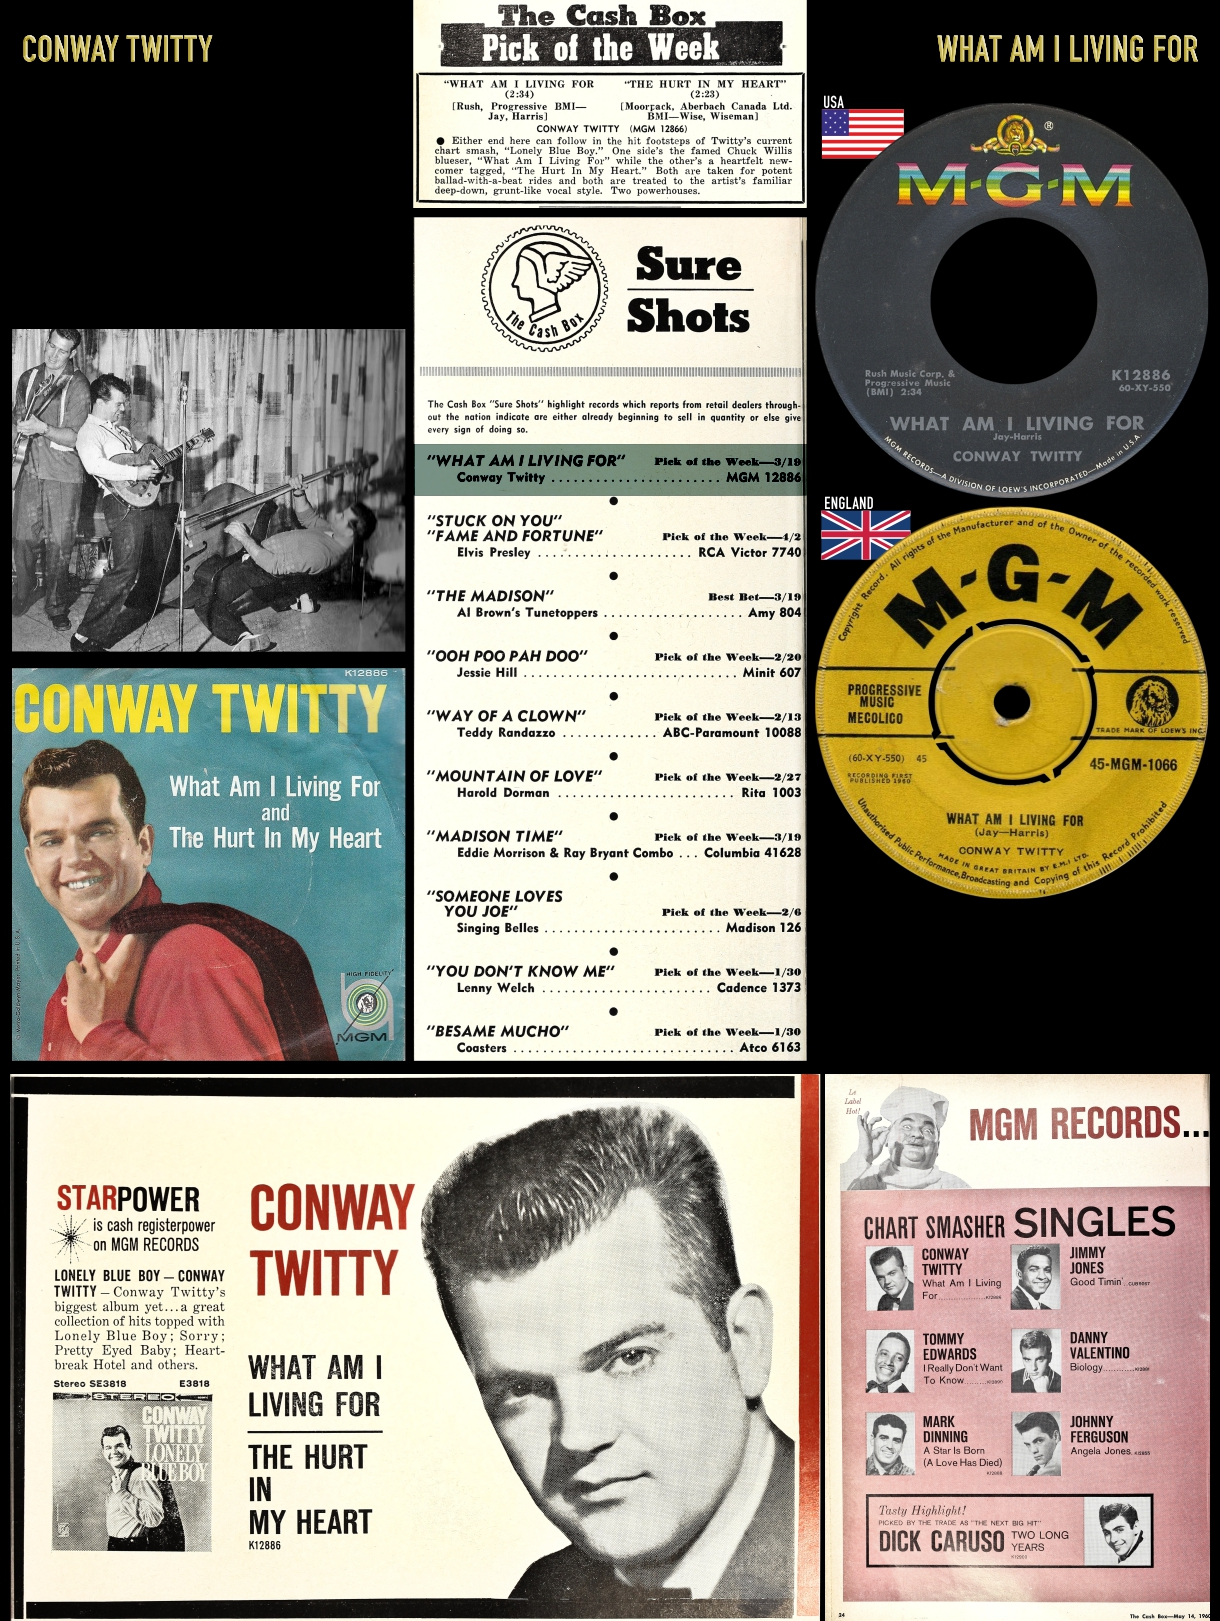 600326_Conway Twitty_What Am I Living You_#